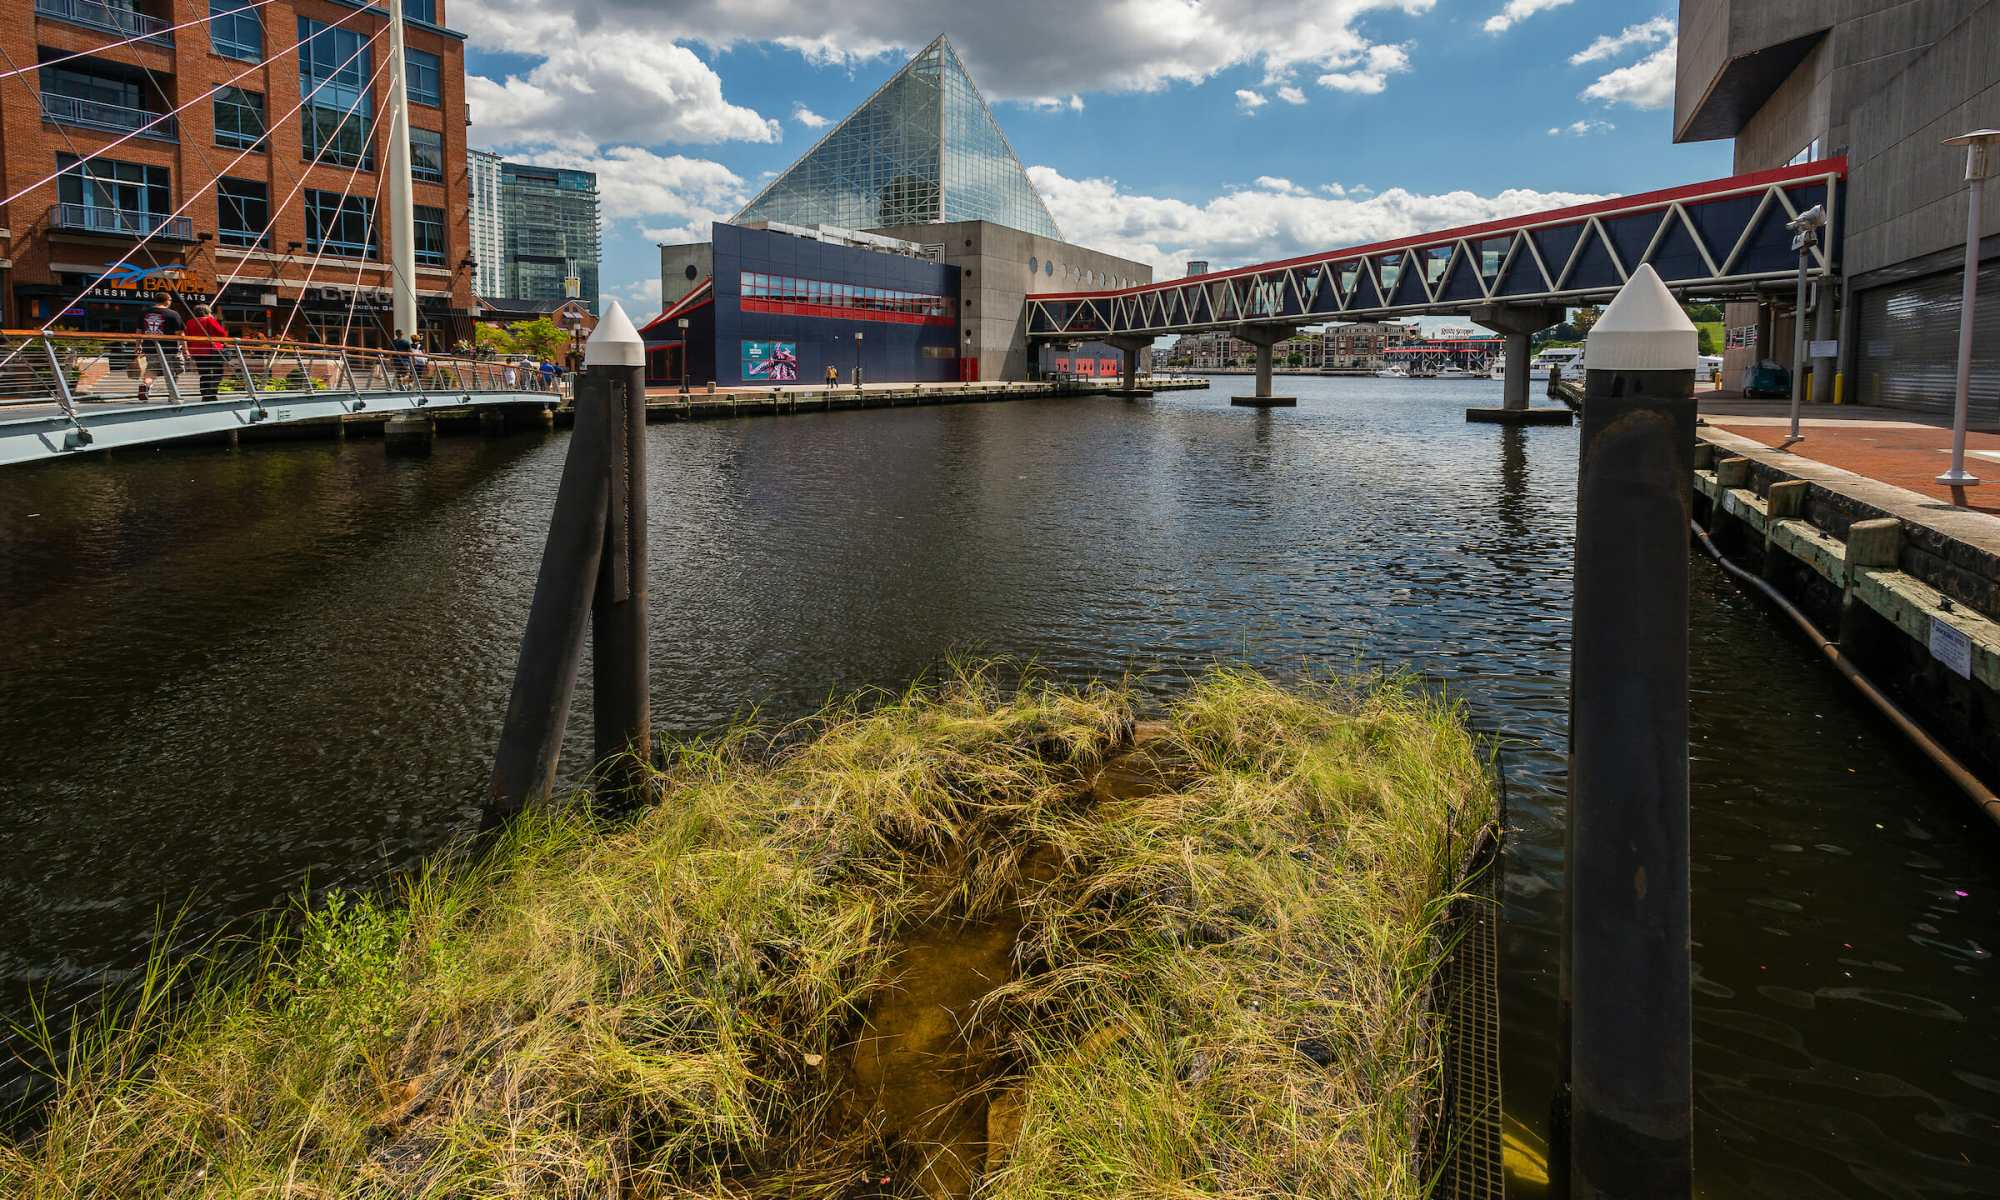 Bringing the Chesapeake Bay to Baltimore's Inner Harbor